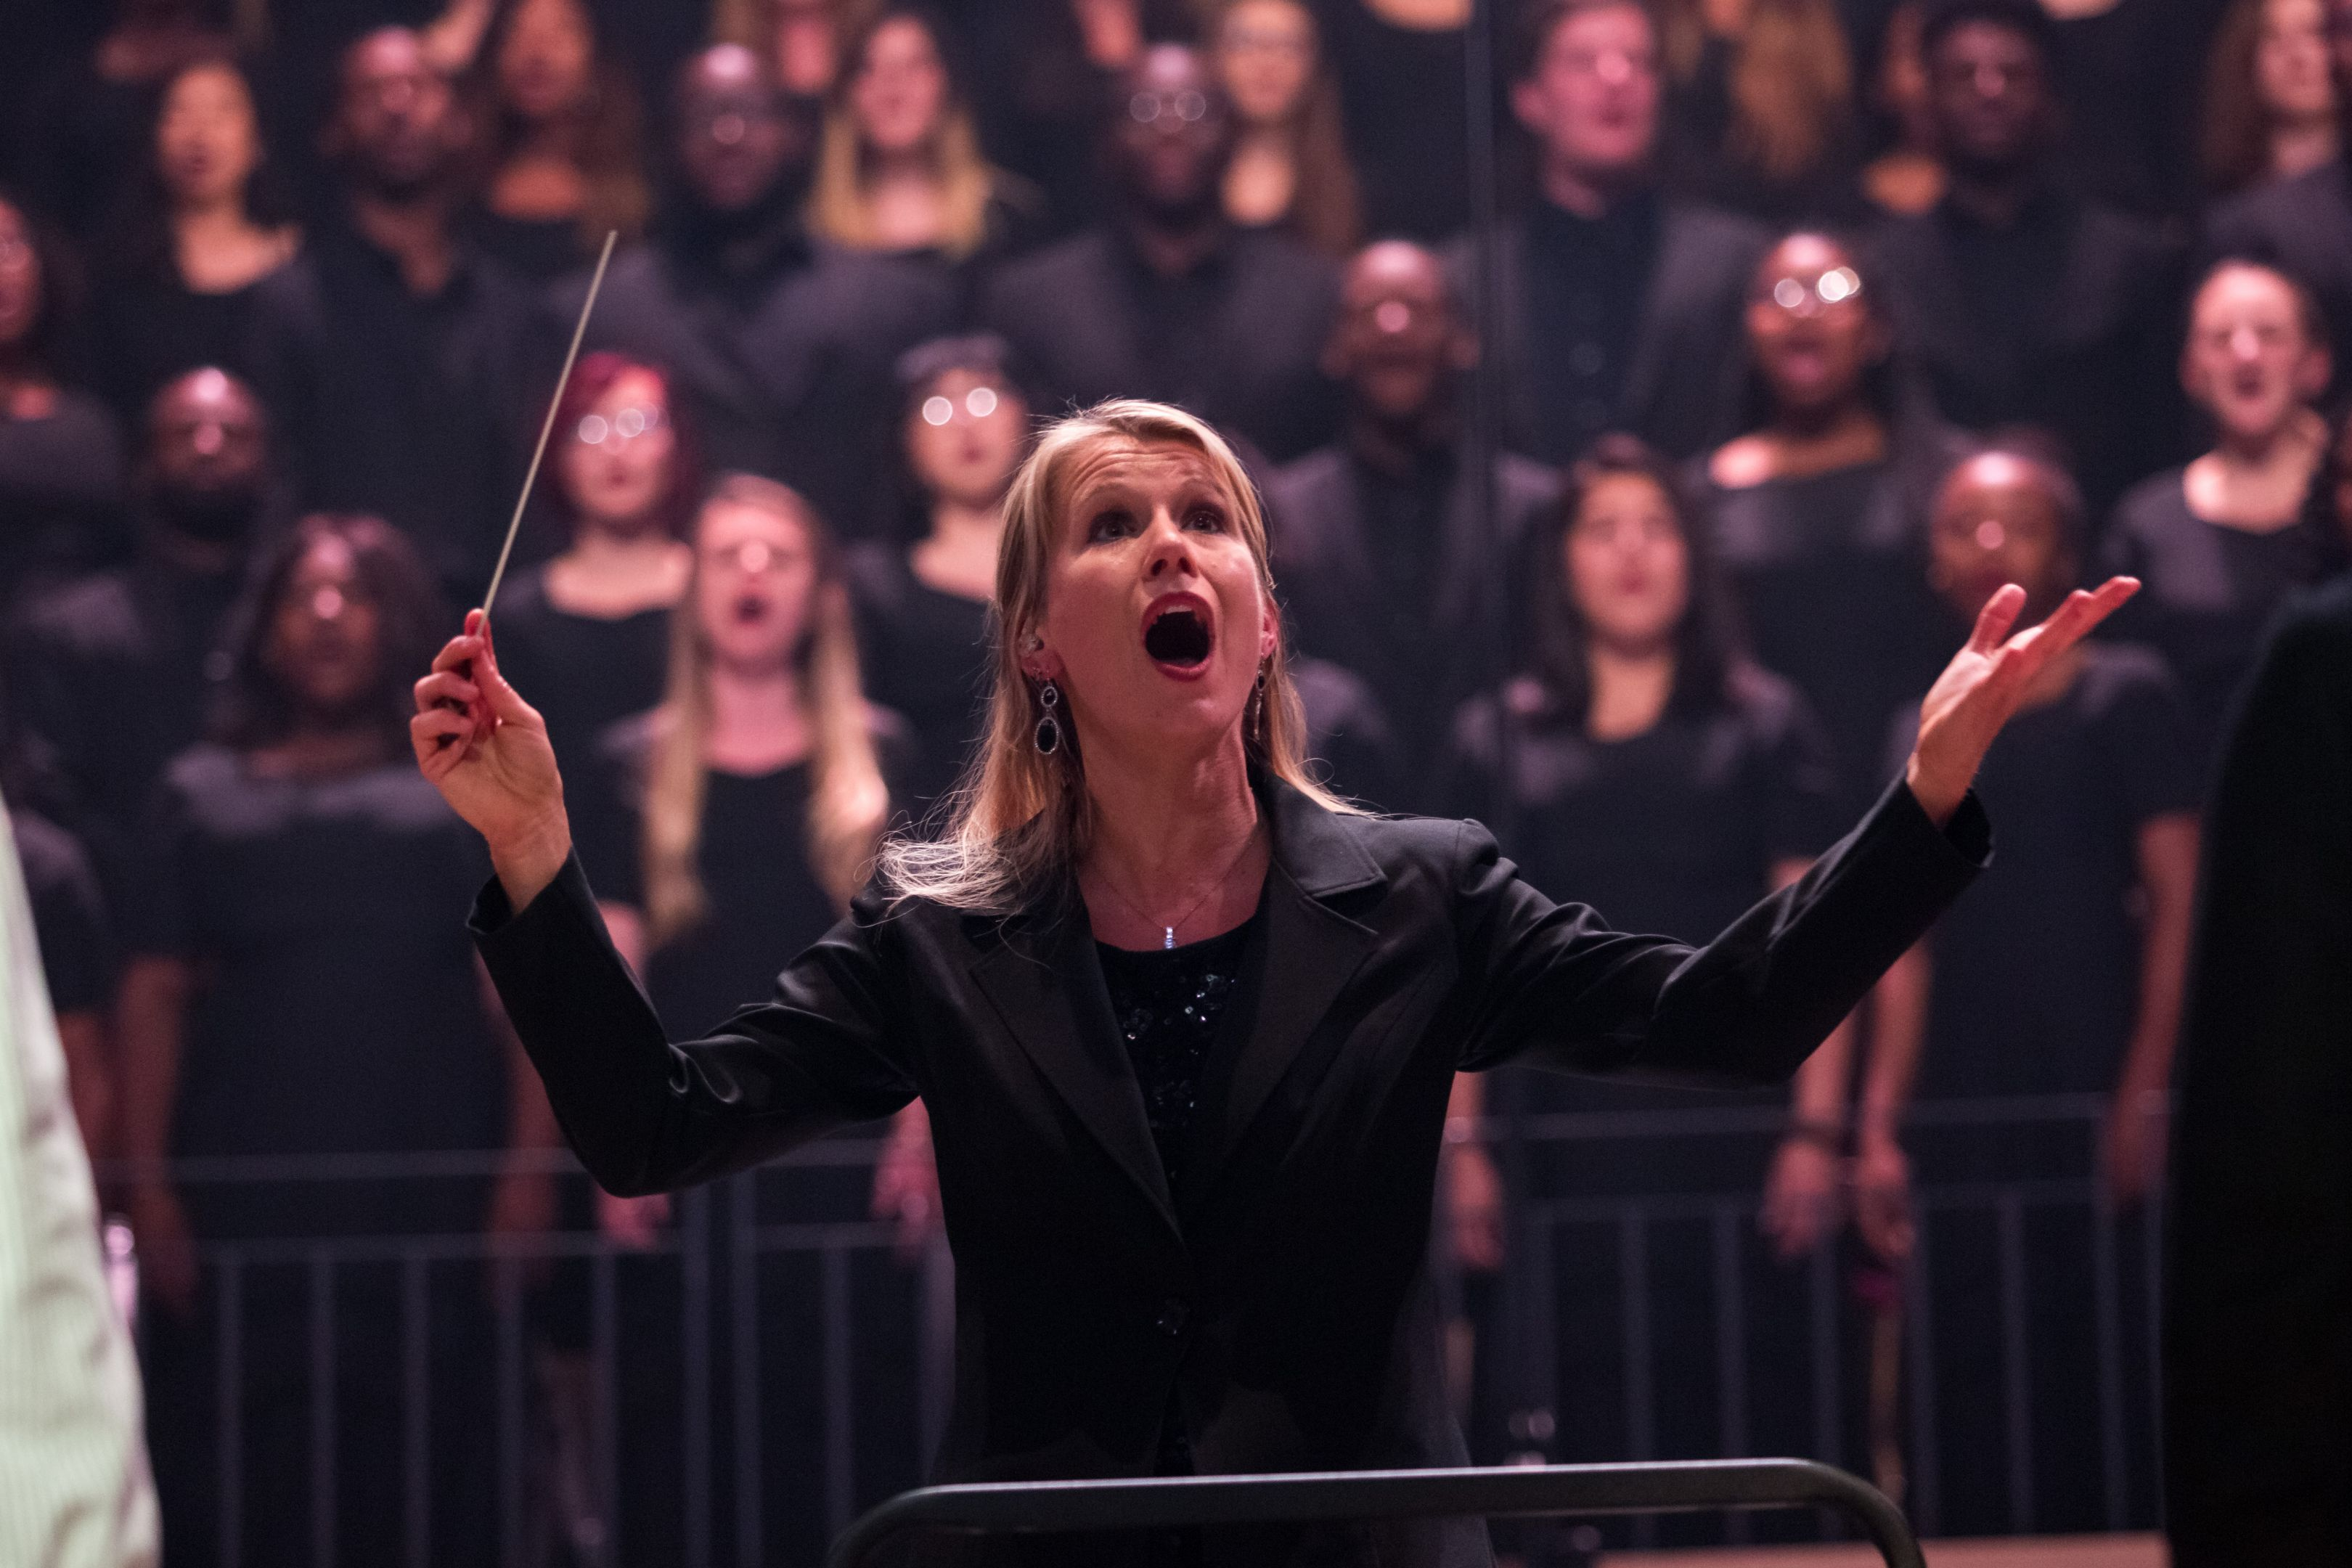 B.M. In Choral Music Education